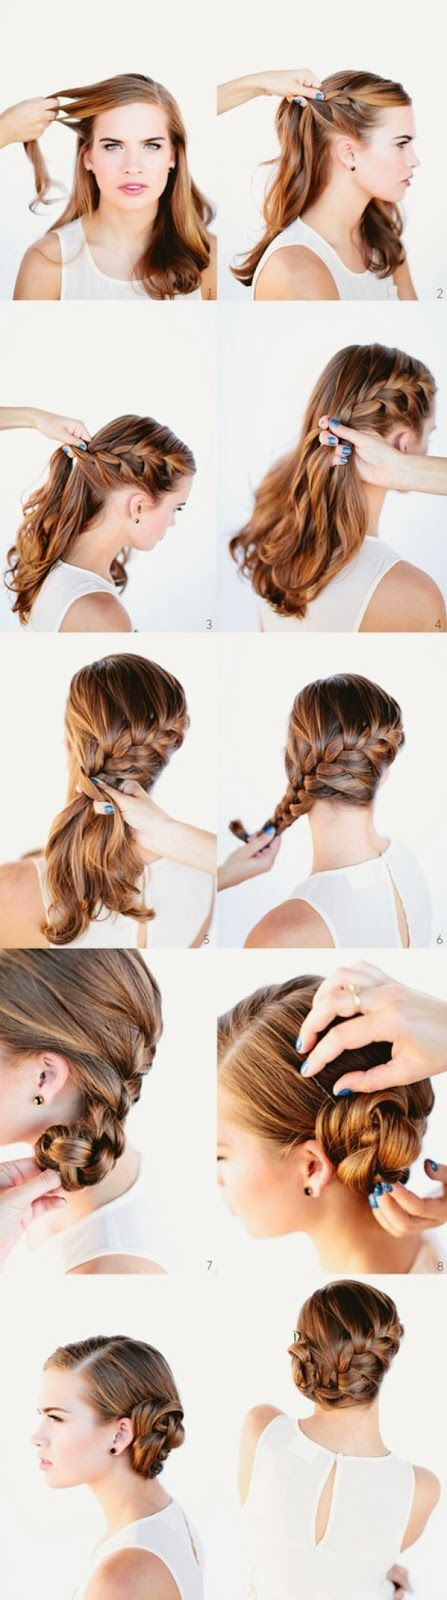 motivational trends: French braid